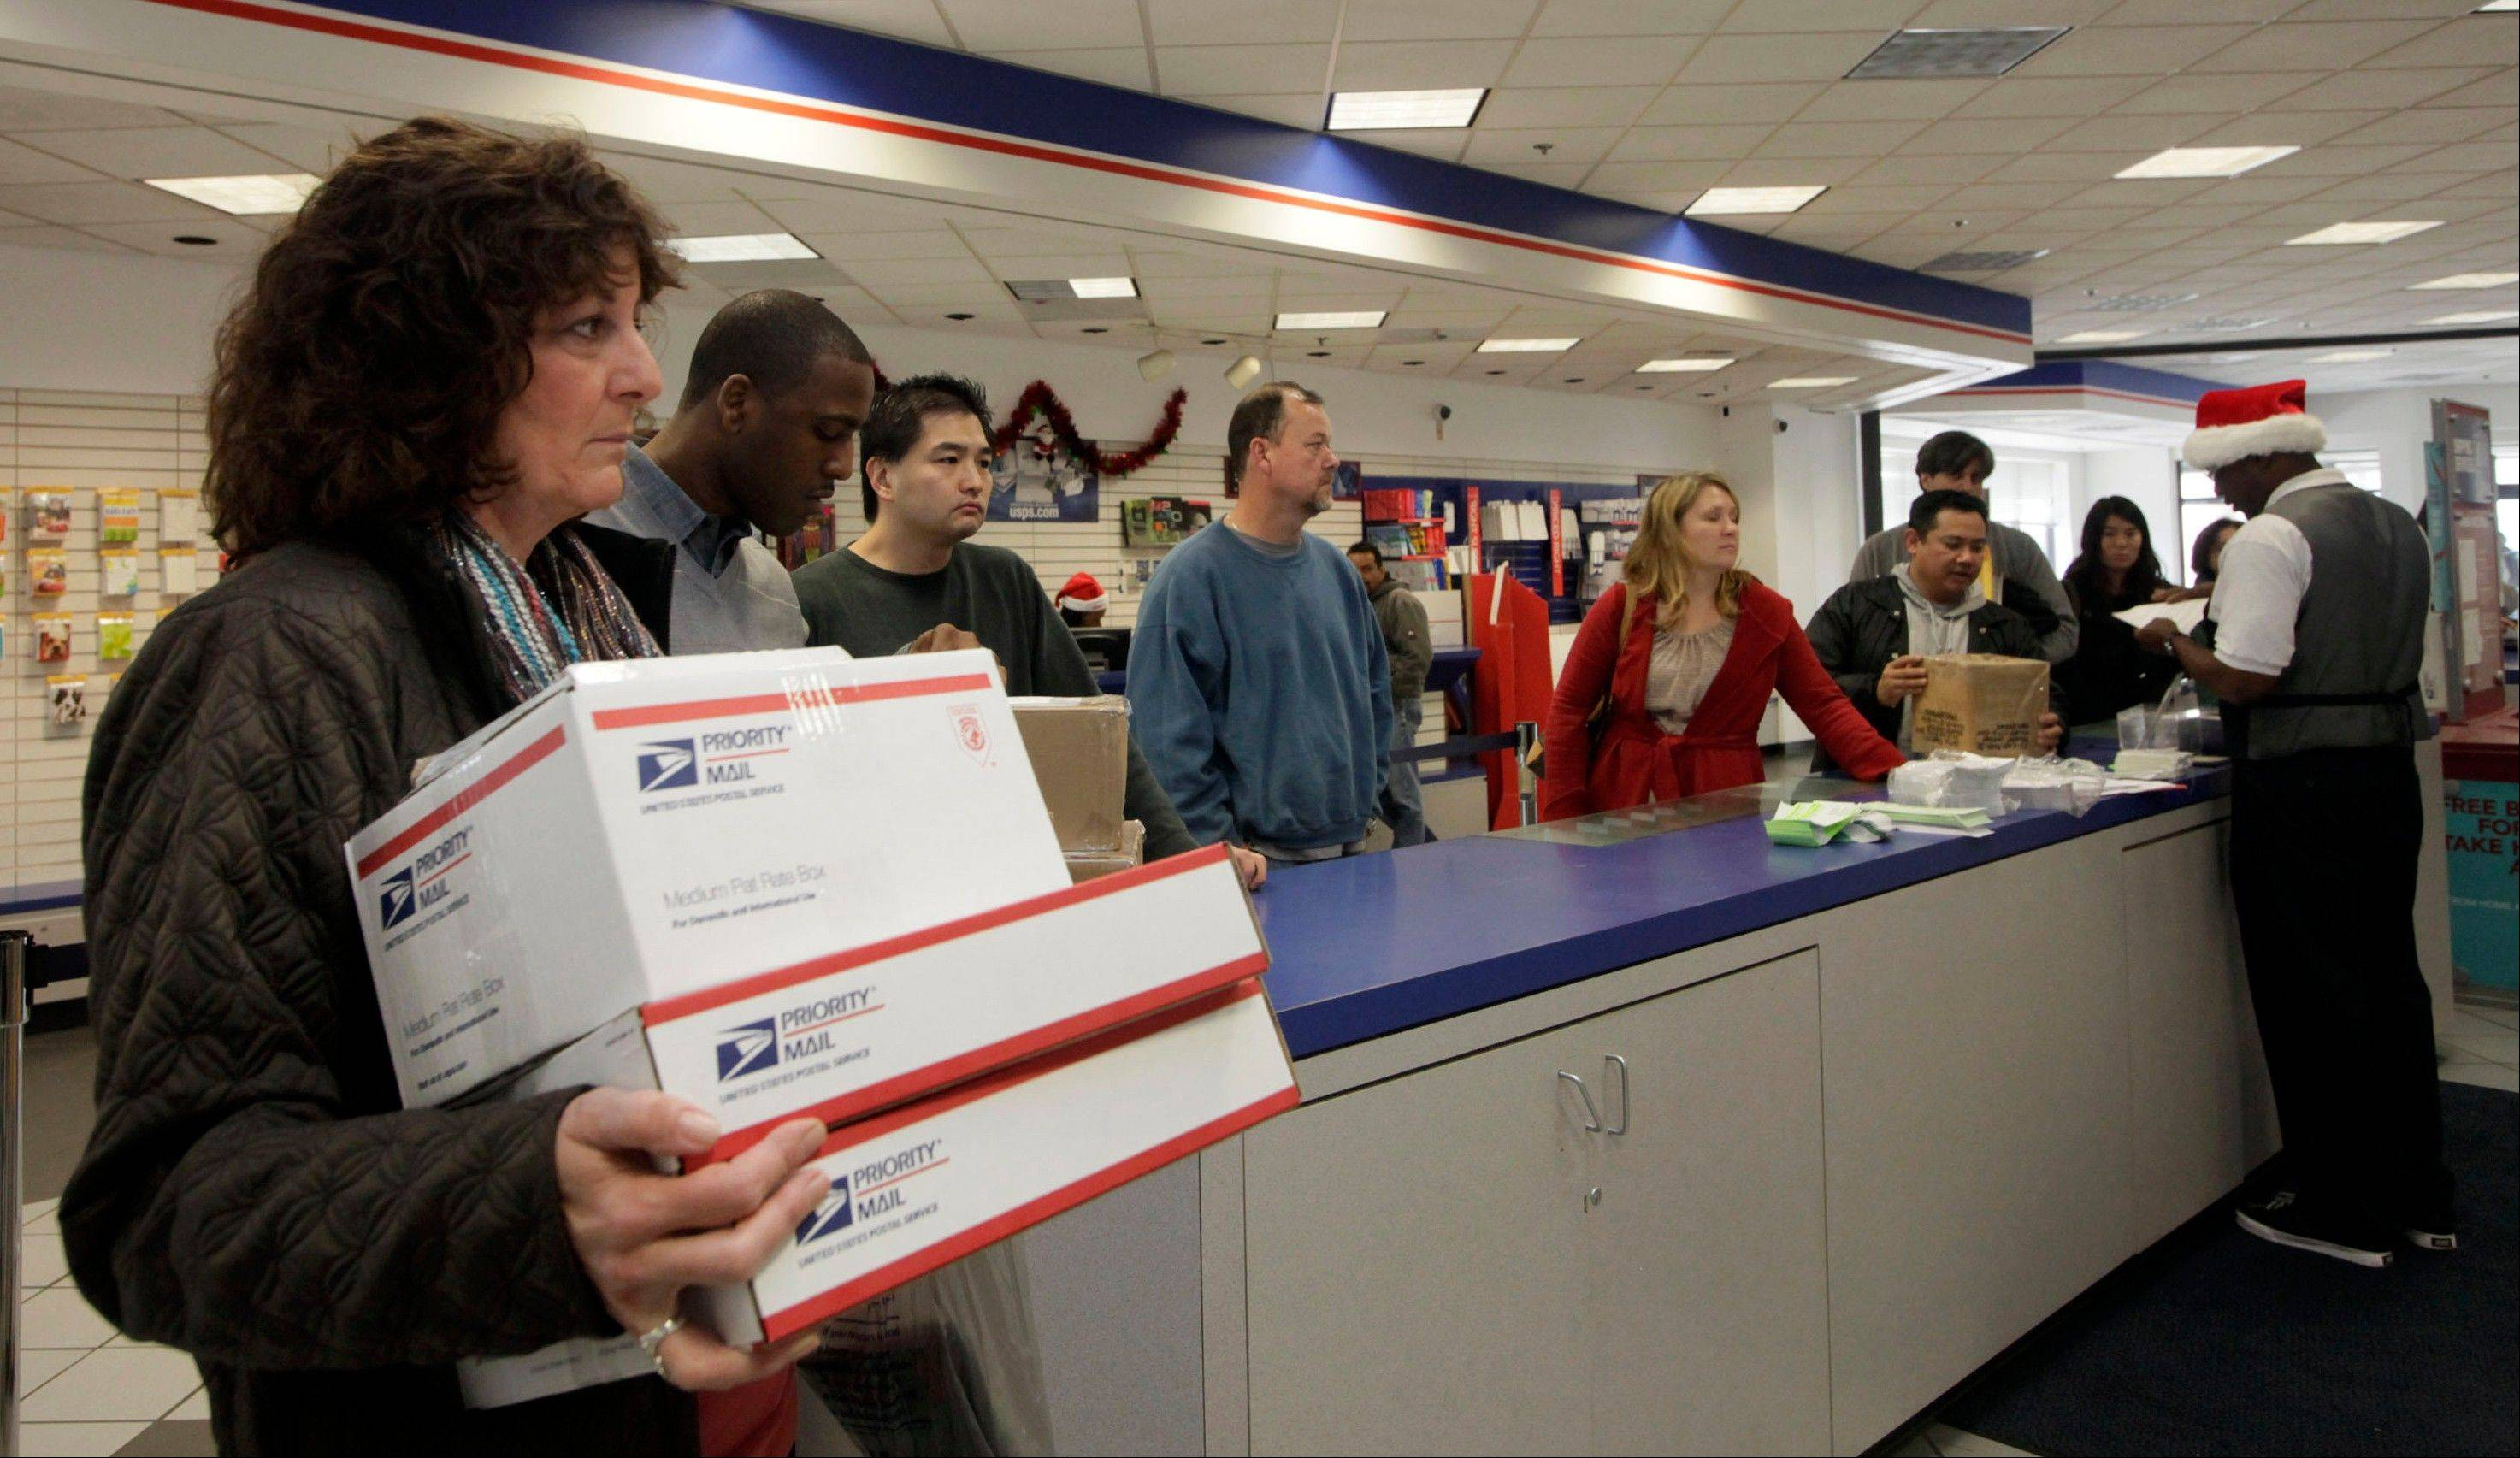 Post offices open on Christmas Eve and New Year's Eve